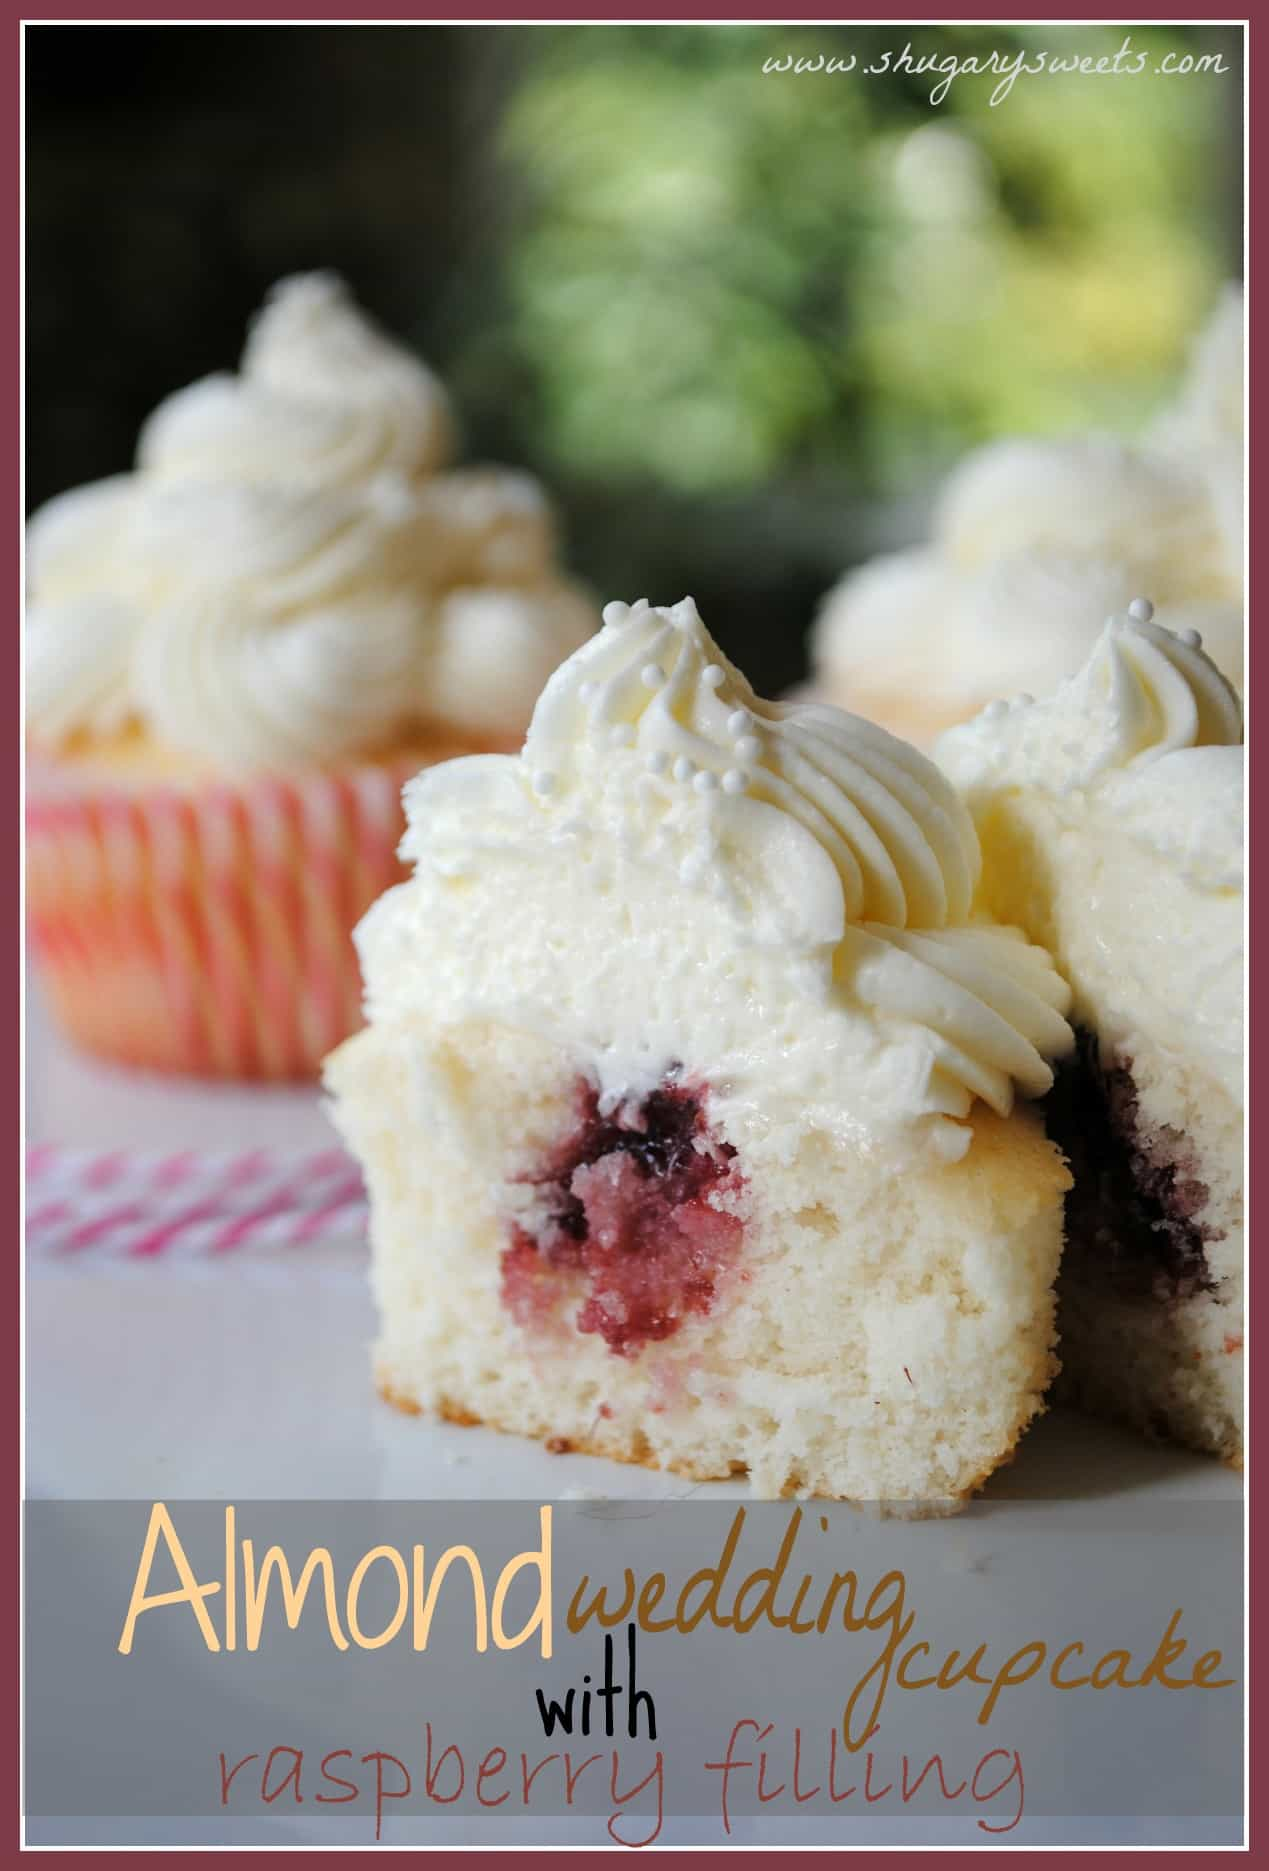 Almond Wedding Cake Cupcakes with Raspberry Filling   Shugary Sweets Almond cupcakes with Raspberry filling  the perfect wedding cake cupcakes